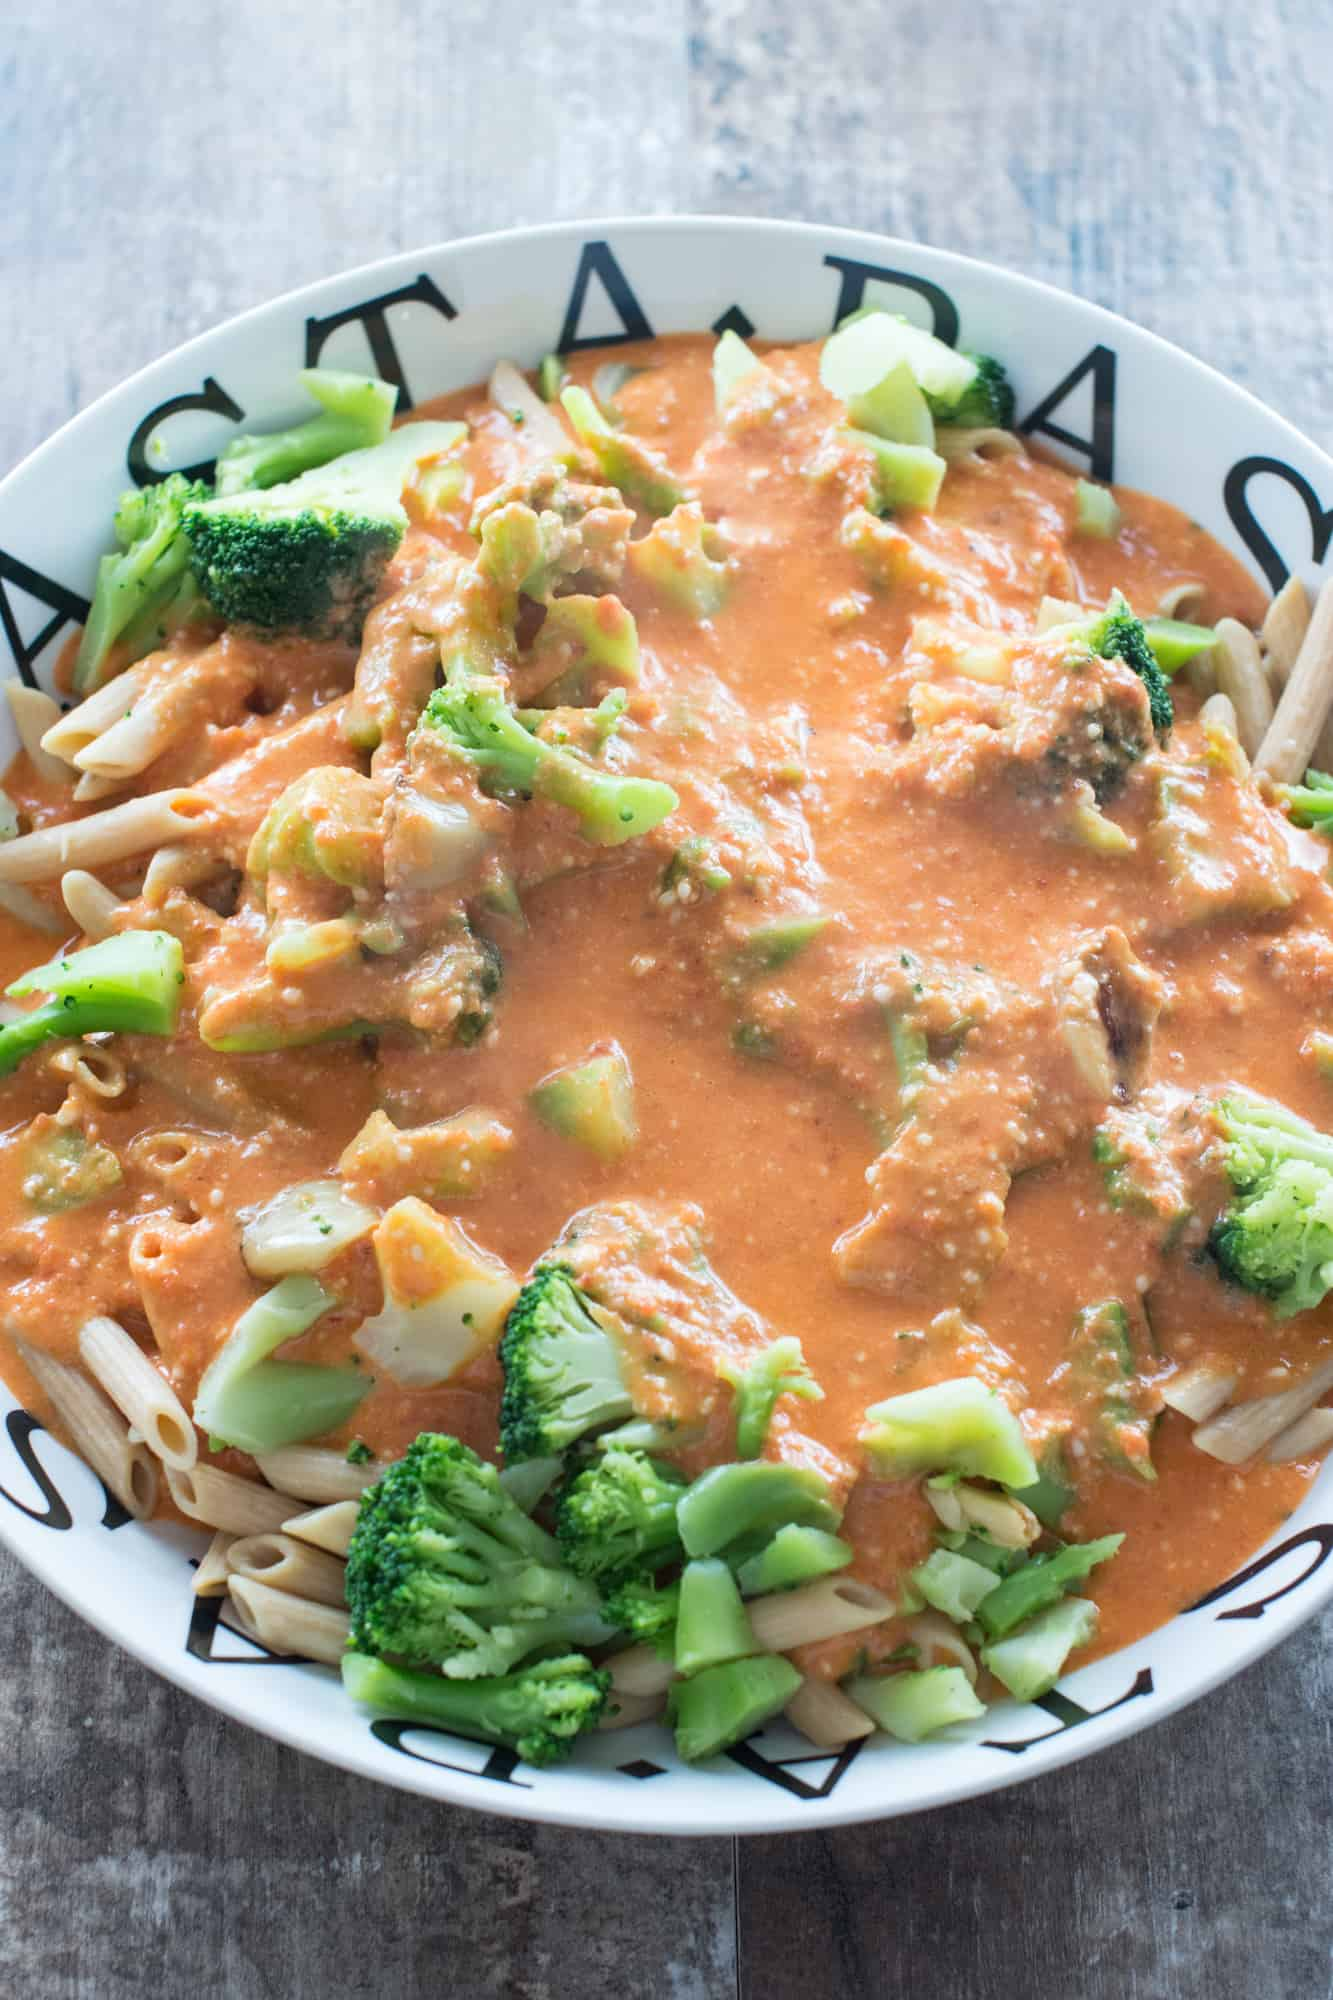 sauce added to the pasta with garlic and broccoli